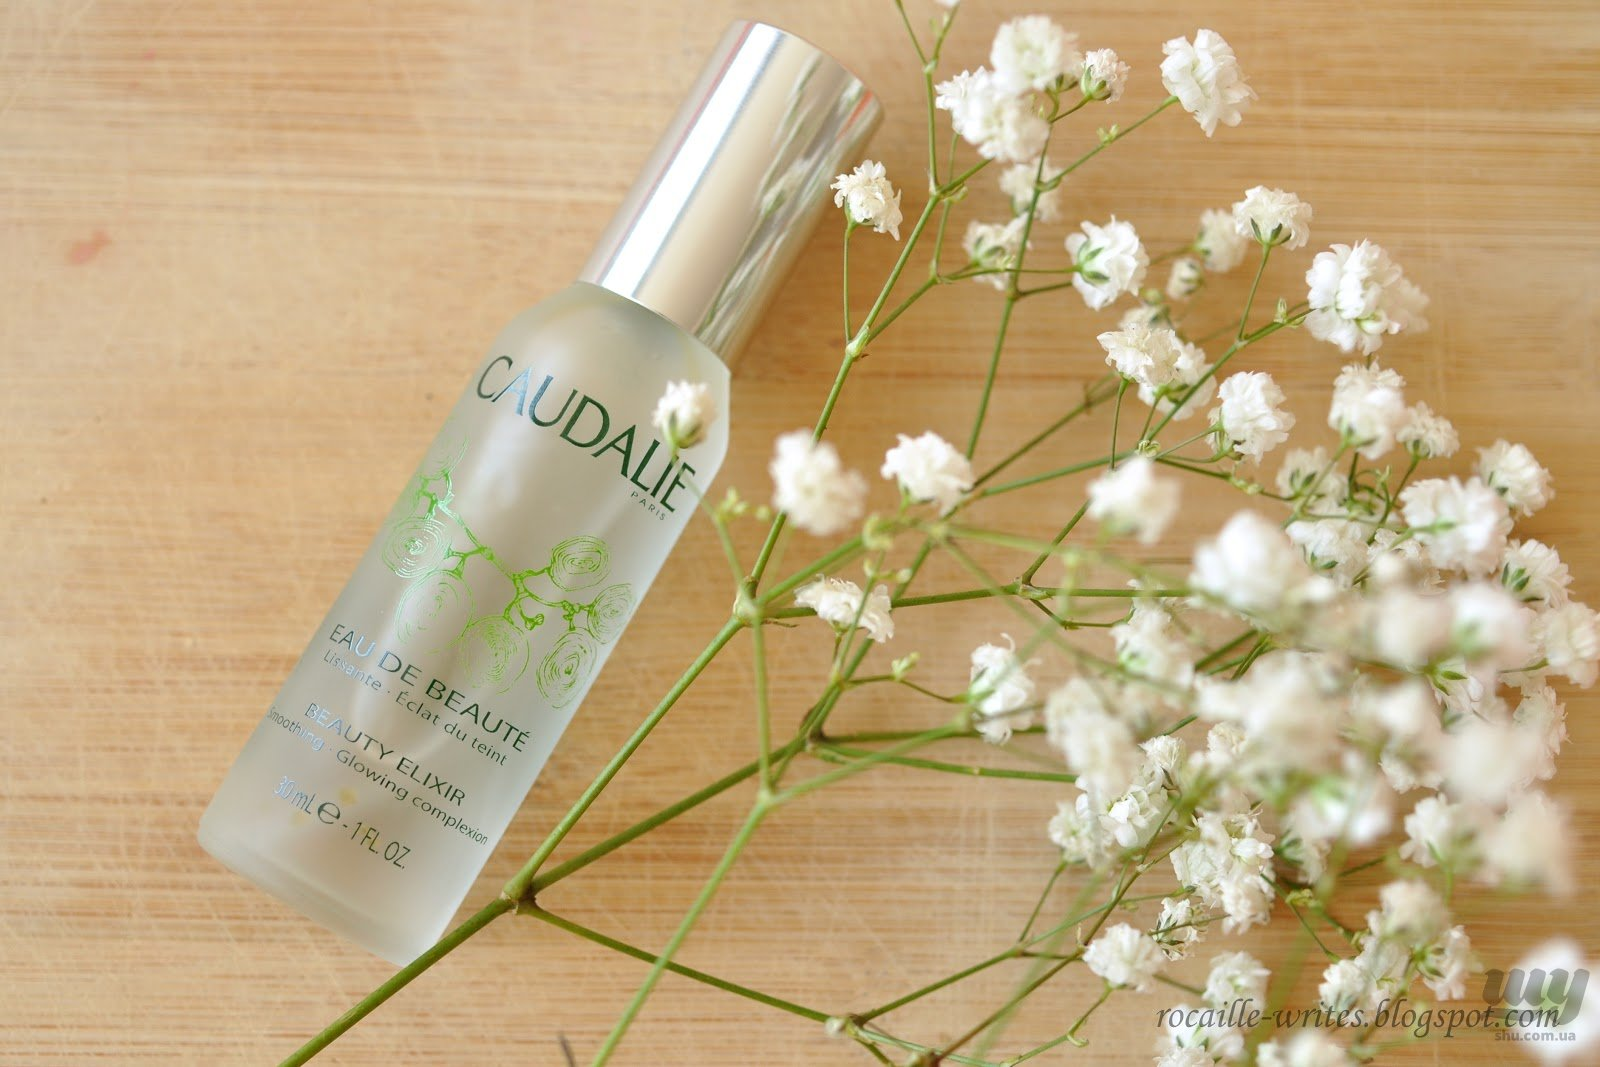 Caudalie_Beauty_Elixir_Review.JPG